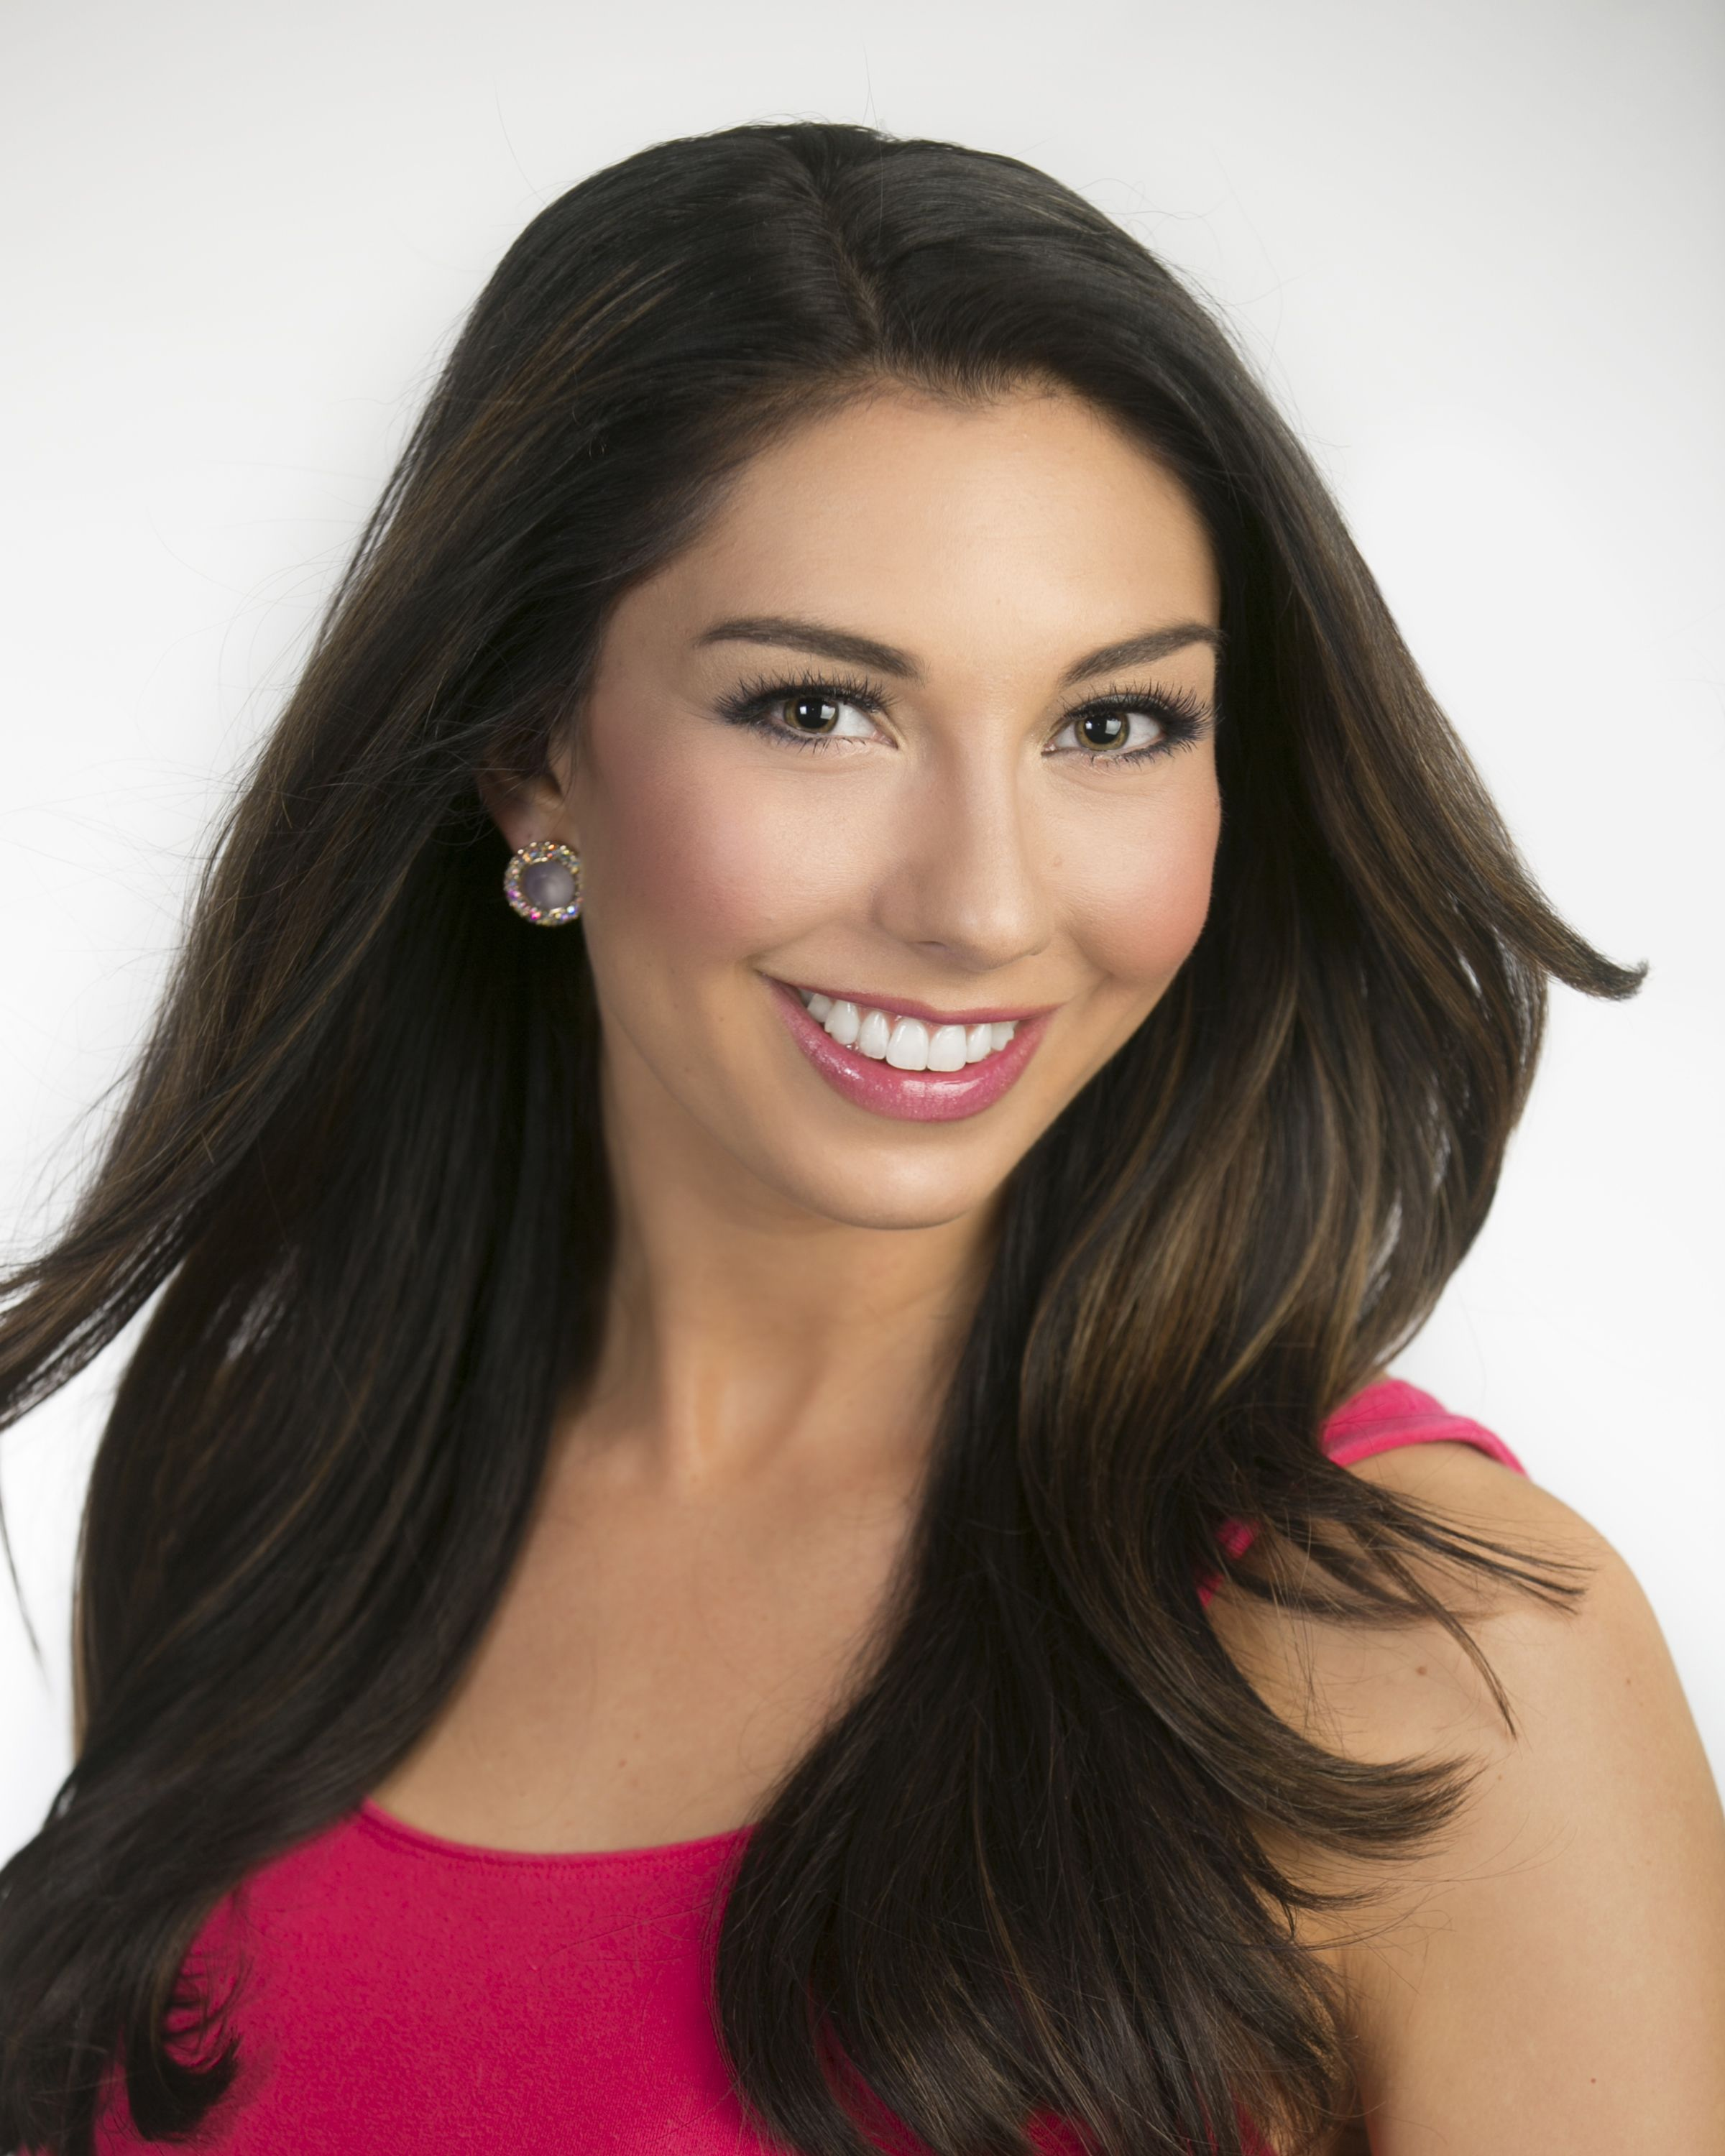 miss colorado 2014 stacey cook miss america 2015 contestants miss colorado 2014 stacey cook